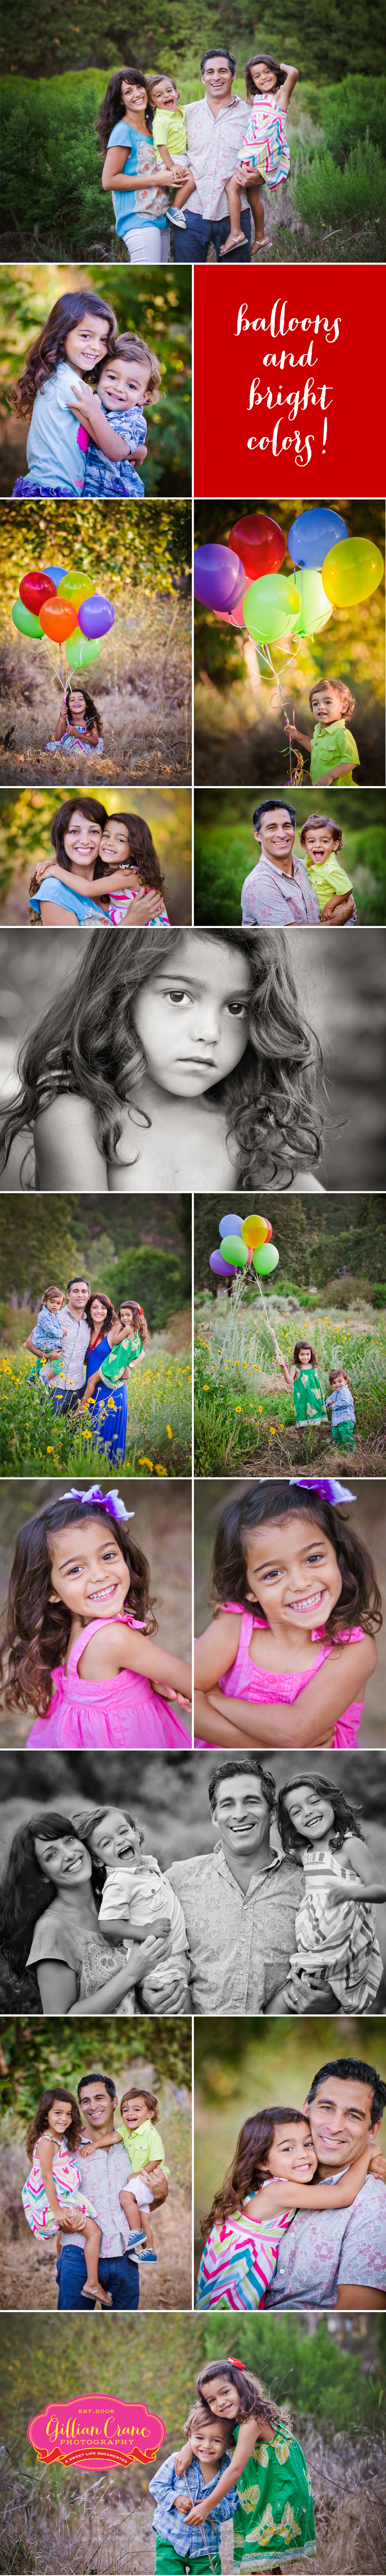 gillian-crane-photography-laguna-beach-family-and-childrens-portrait-photographer